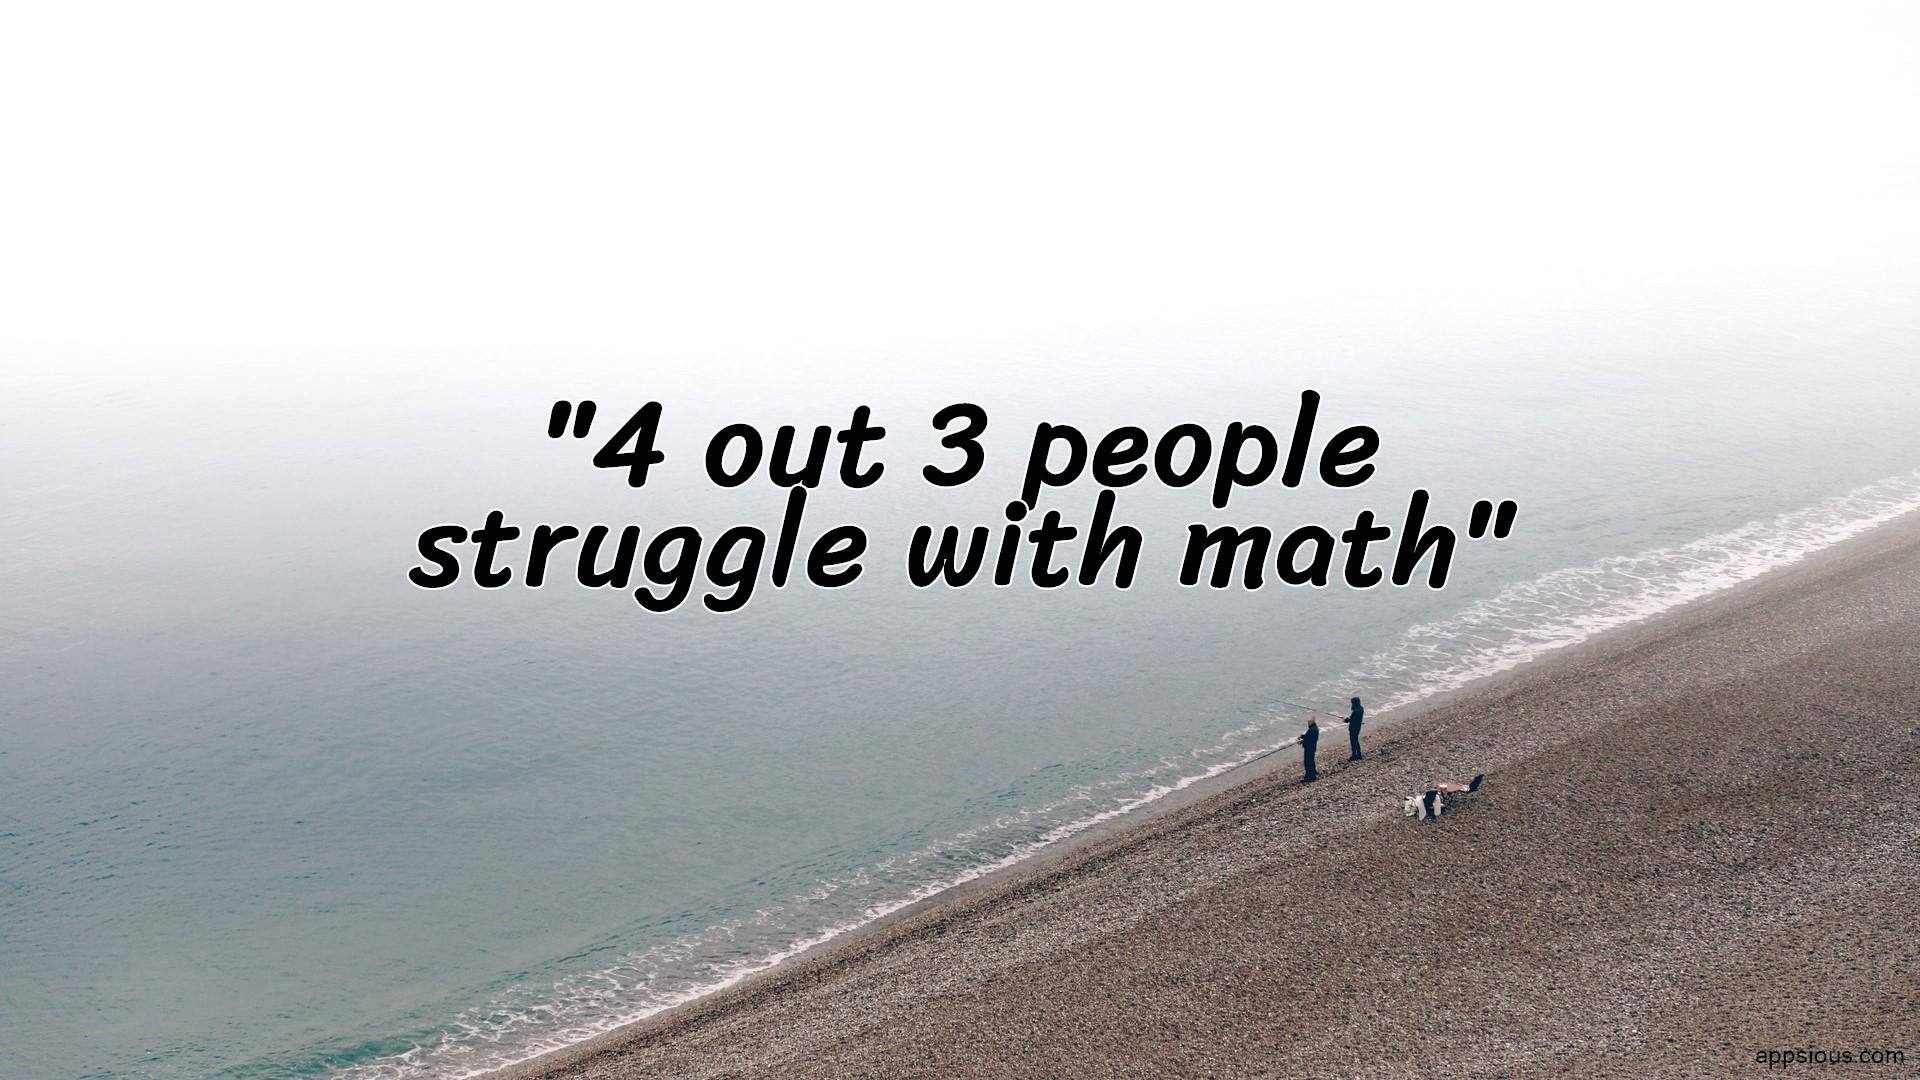 4 out 3 people struggle with math